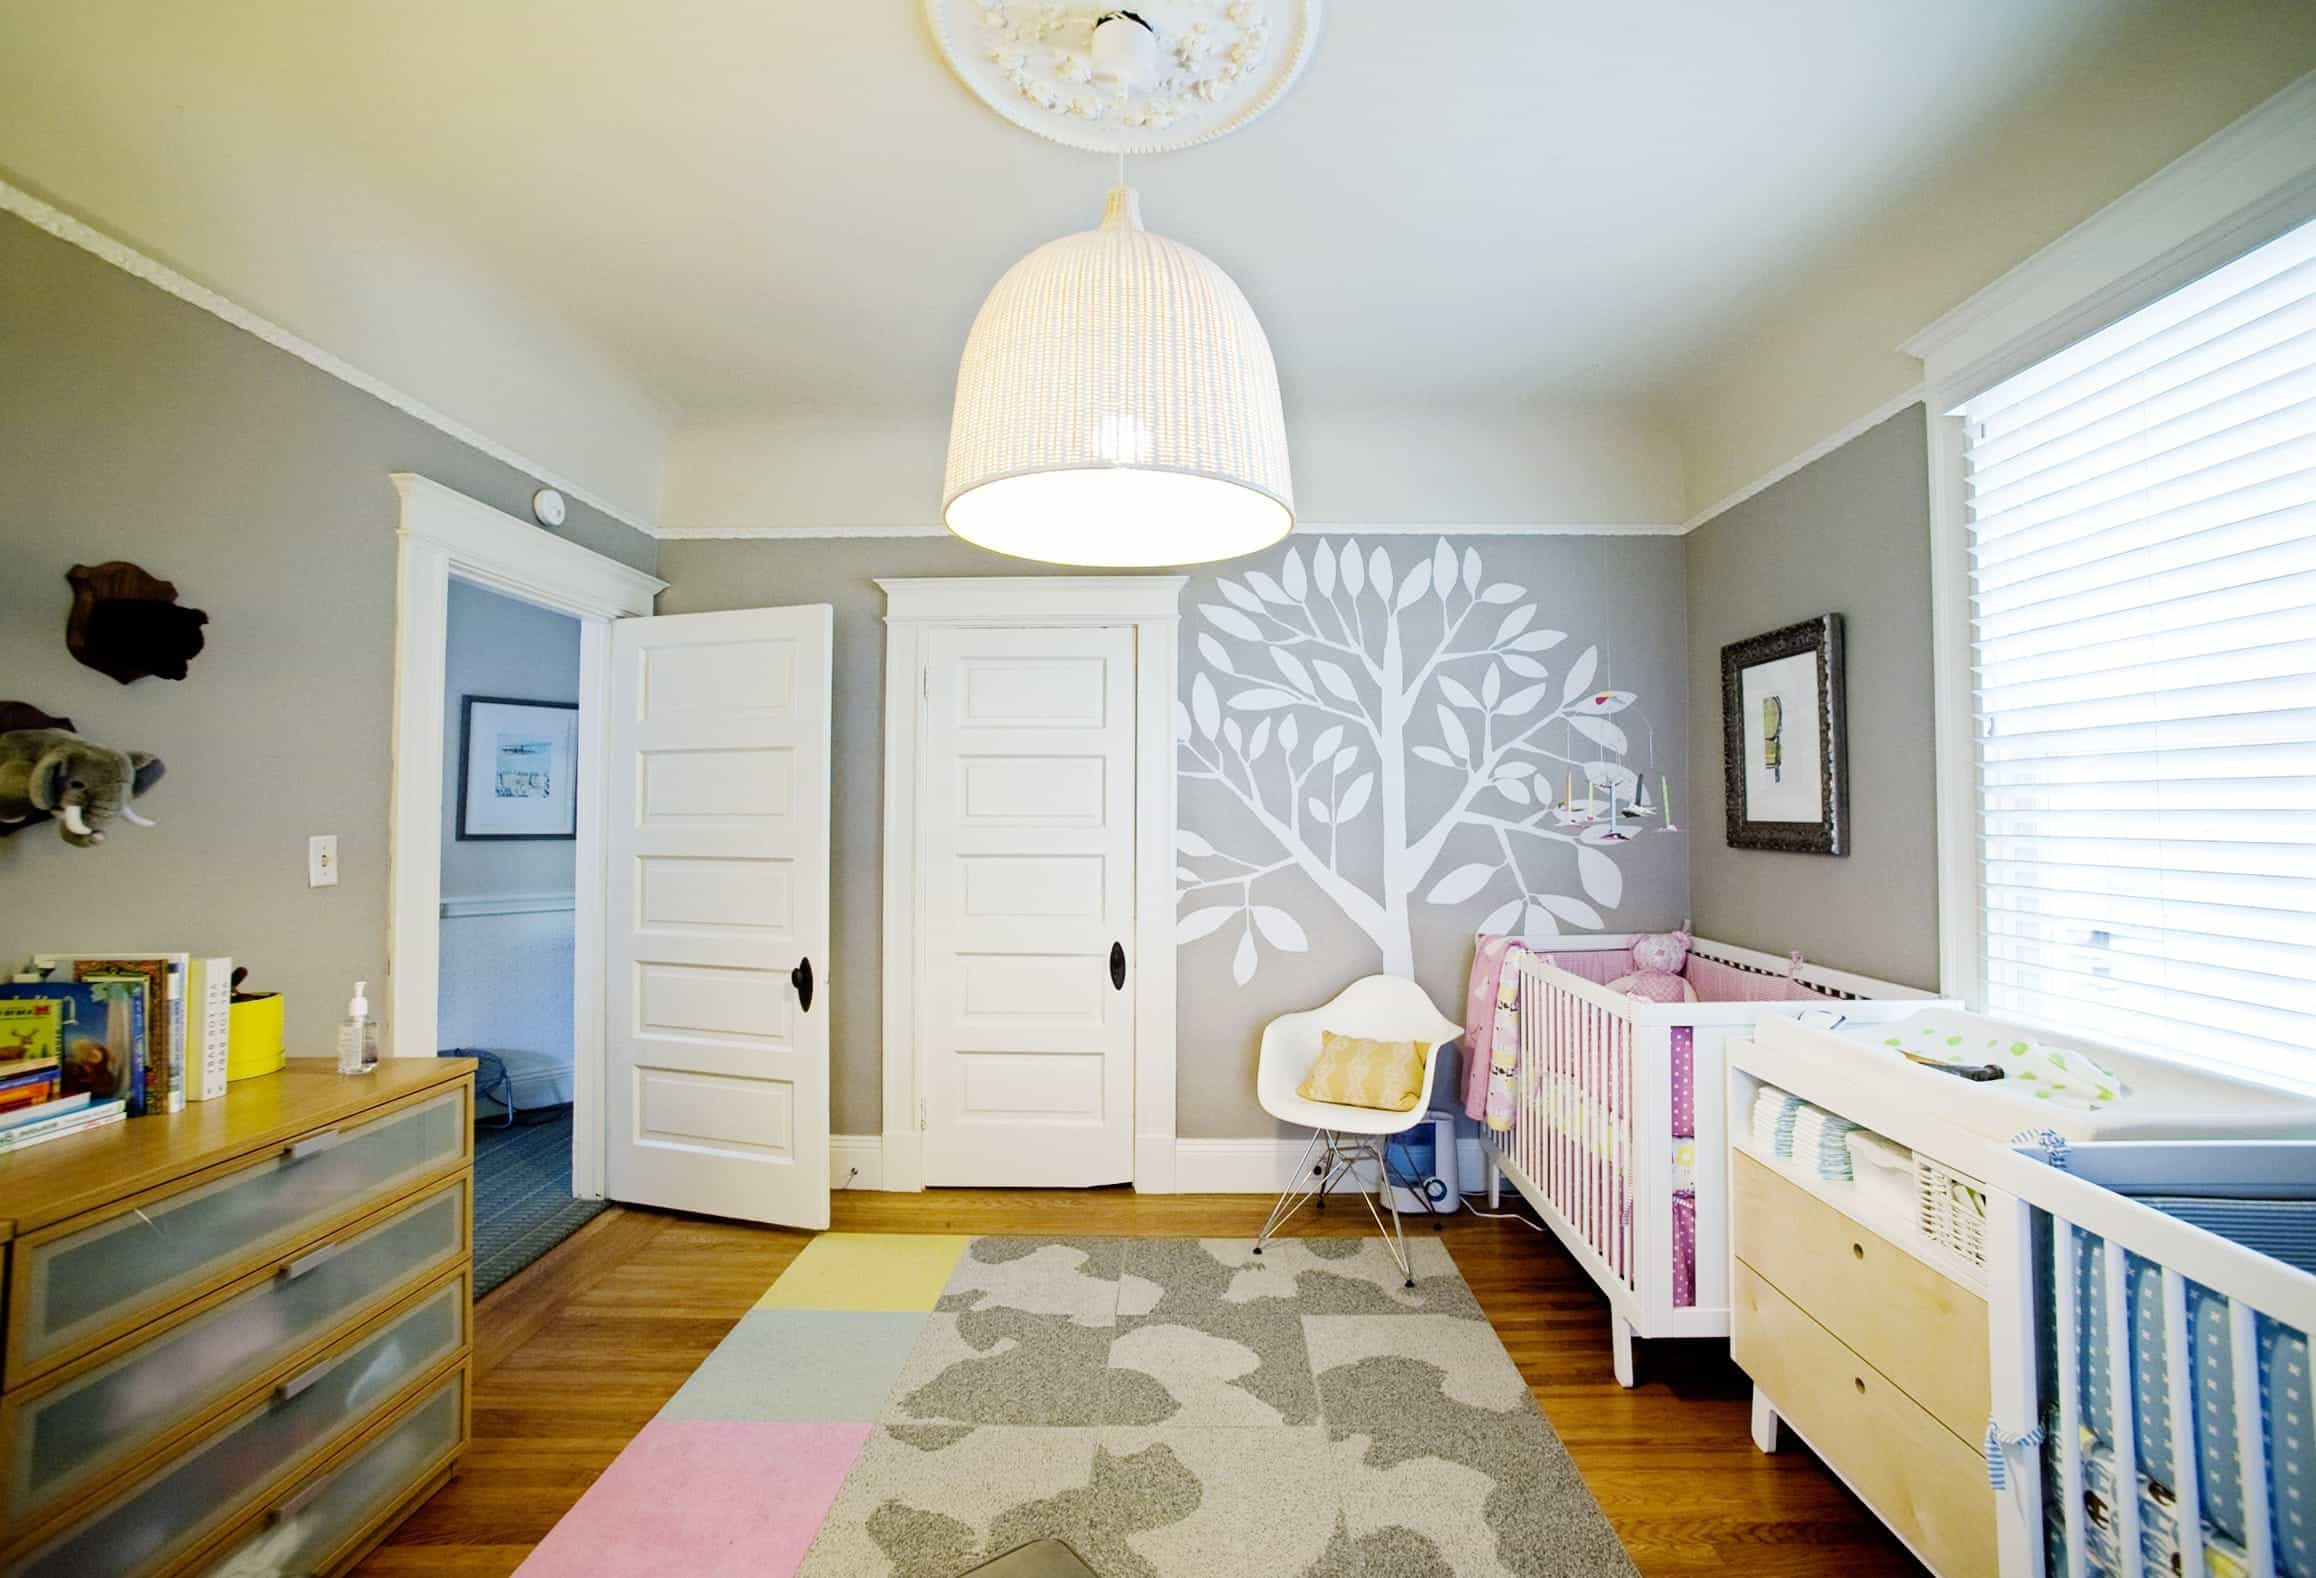 Modern Twin Nursery With Charming Wall Art (Image 21 of 33)